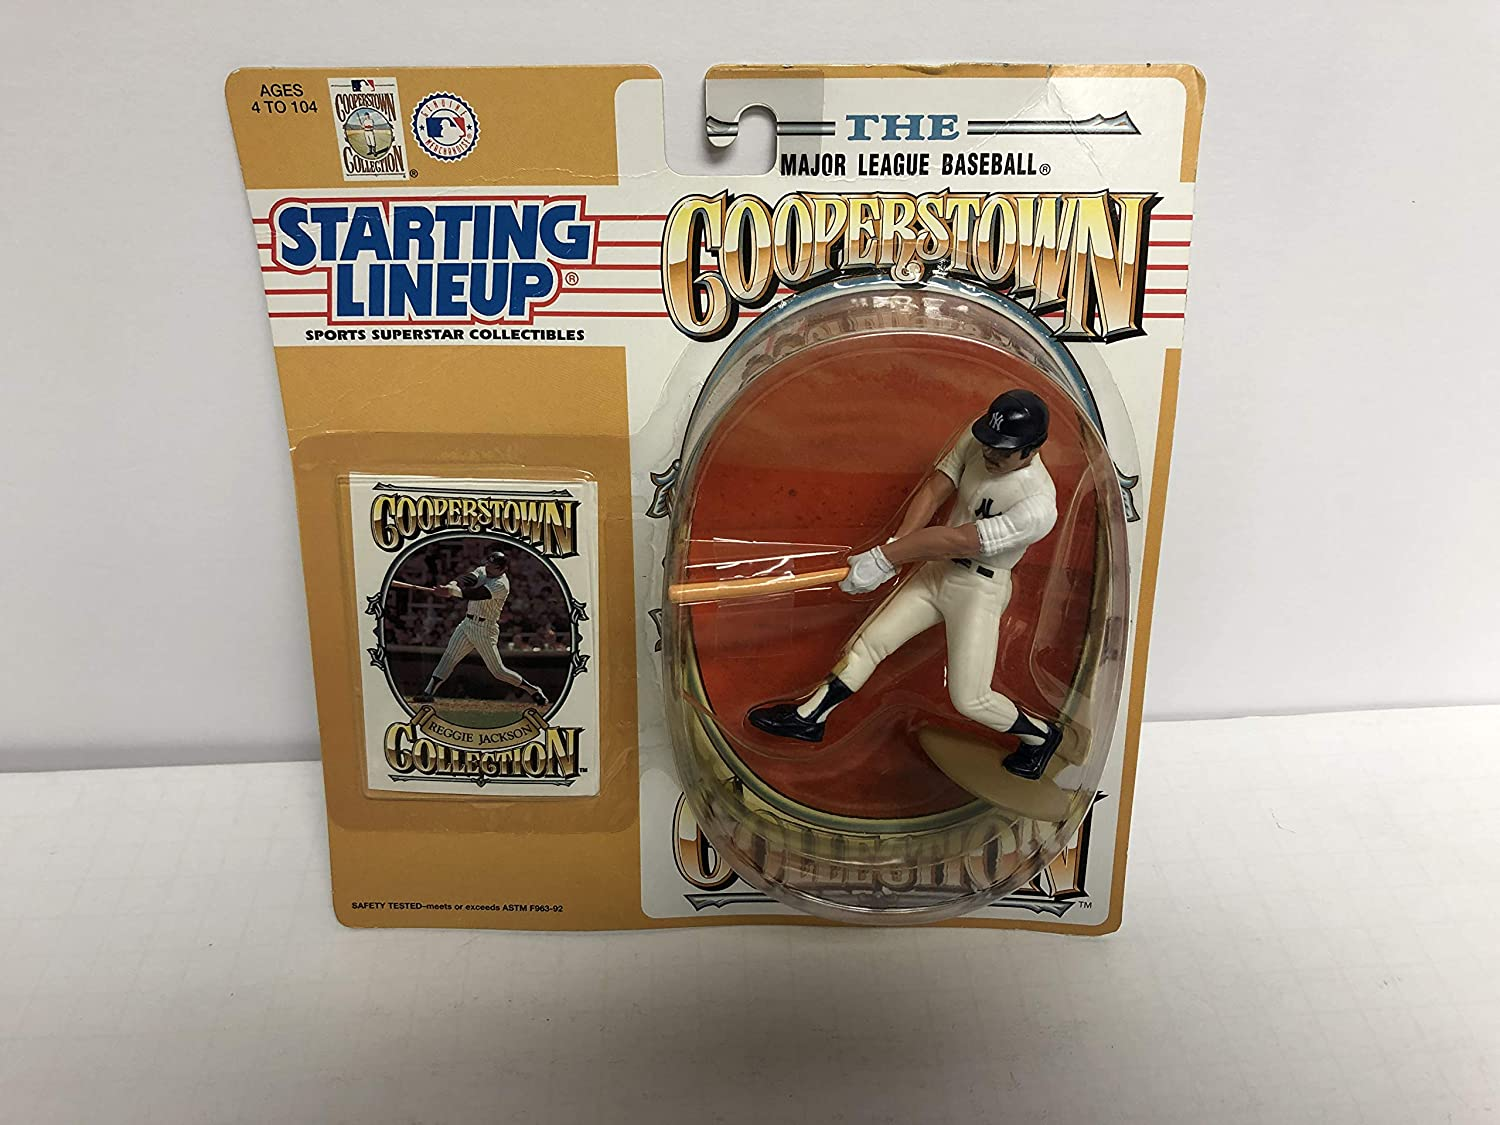 1994 Reggie Jackson Cooperstown Collection New York Yankees MLB Baseball Action Figure with Collectible Trading Card